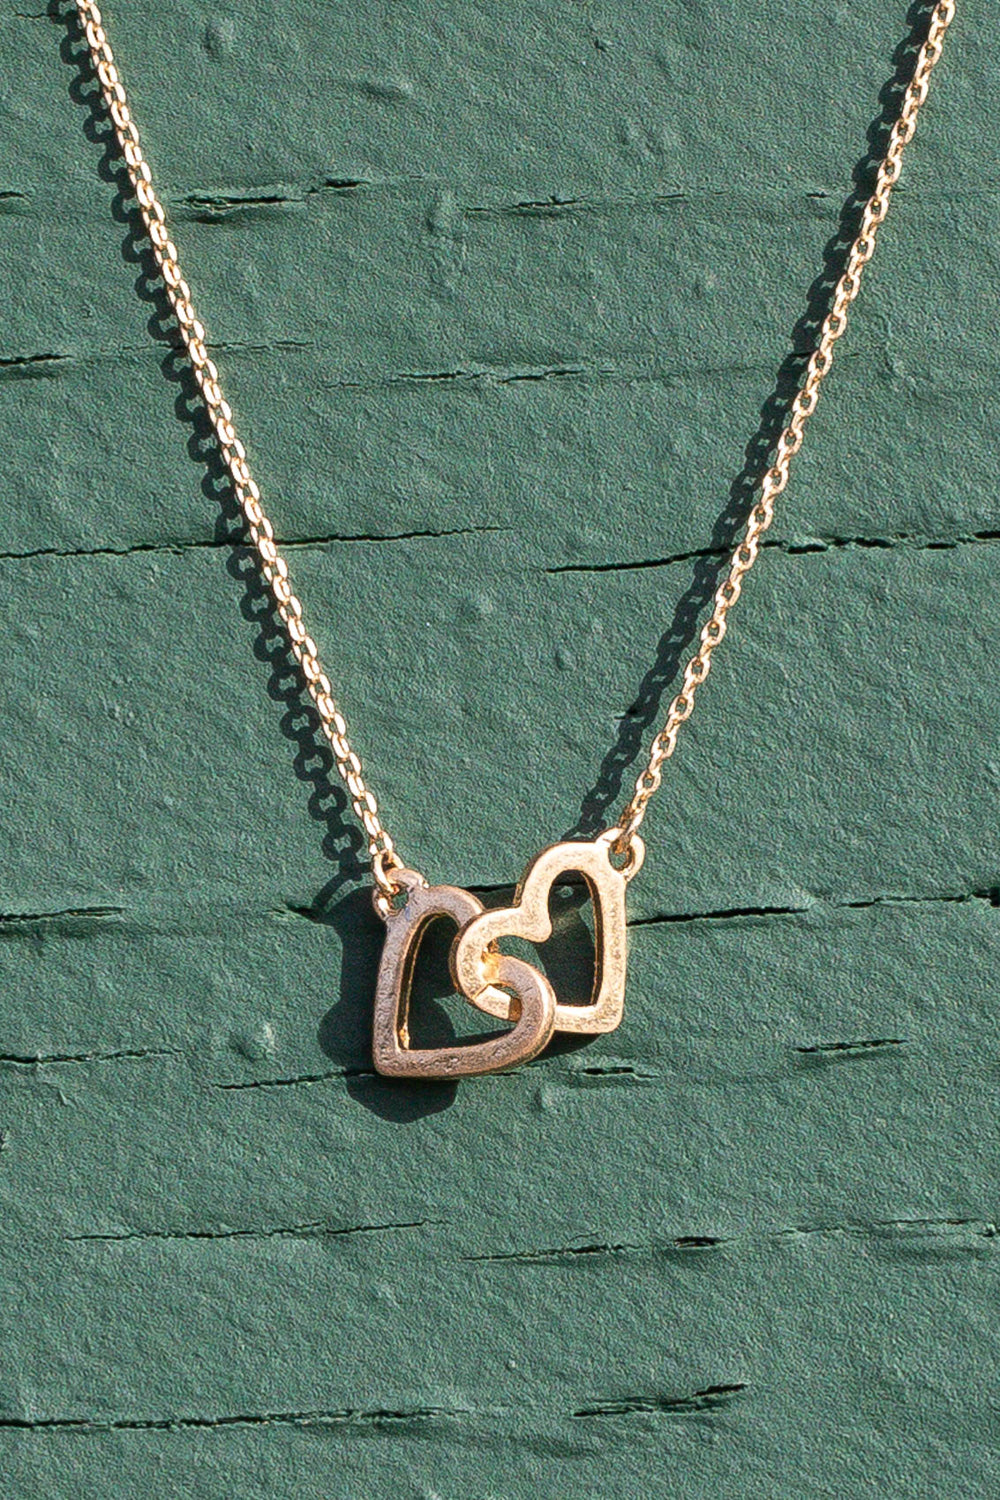 Relax Necklace Heart Necklace Infinity Necklace Love Knot Necklace